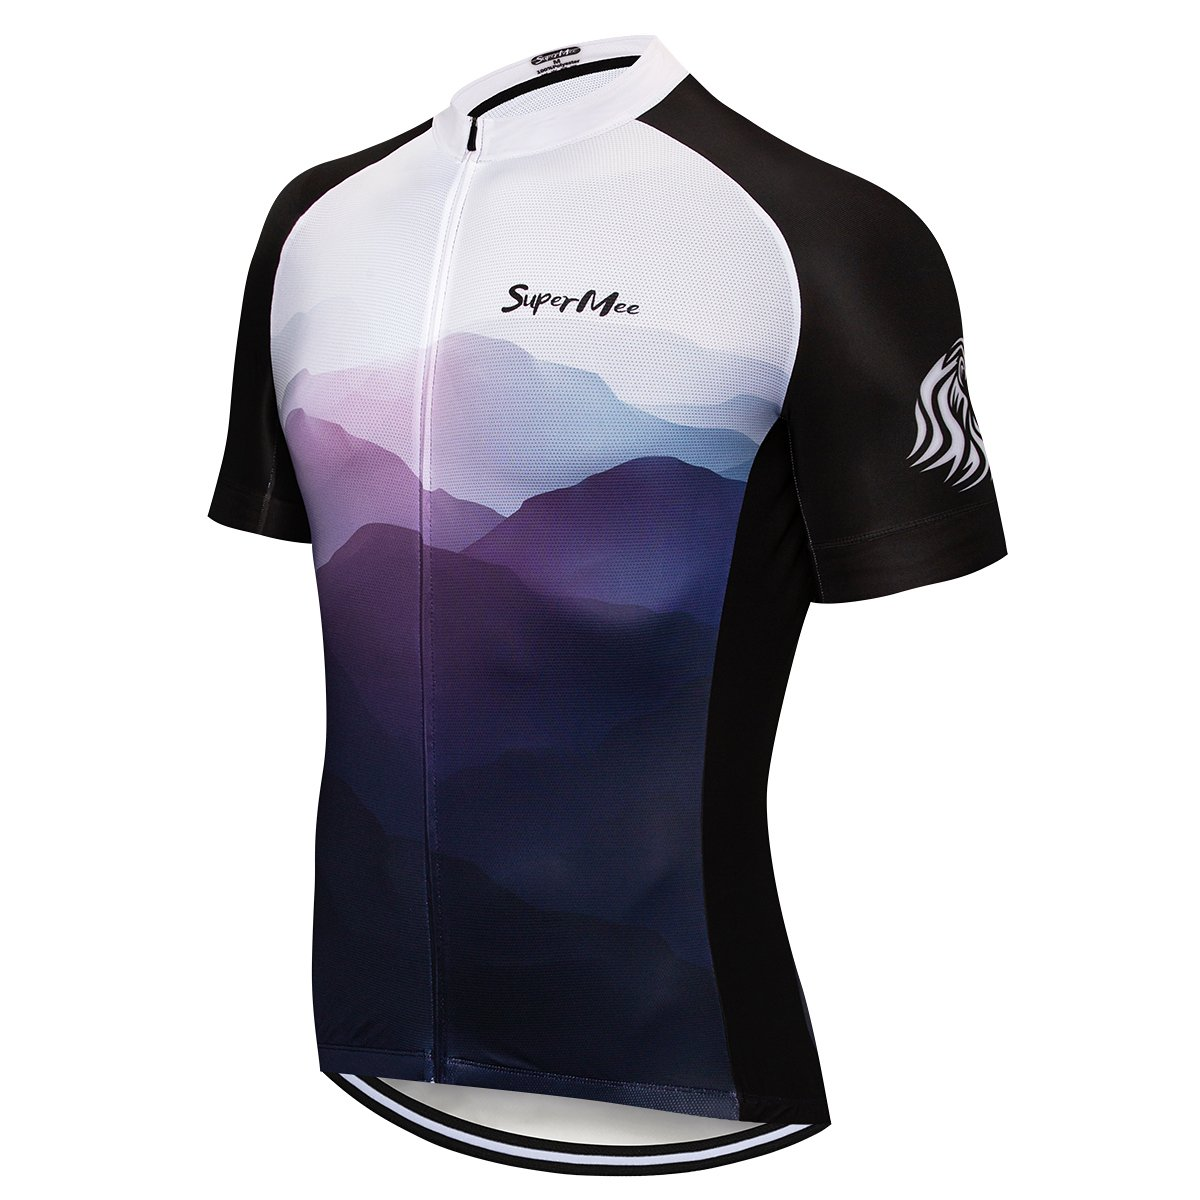 7a402cd6c Amazon.com  SuperMee Men s Short Sleeve Cycling Jersey Loose Fit Bike Shirts  Full Zipper Breathable Bike Jerseys Pocket Lightweight  Clothing